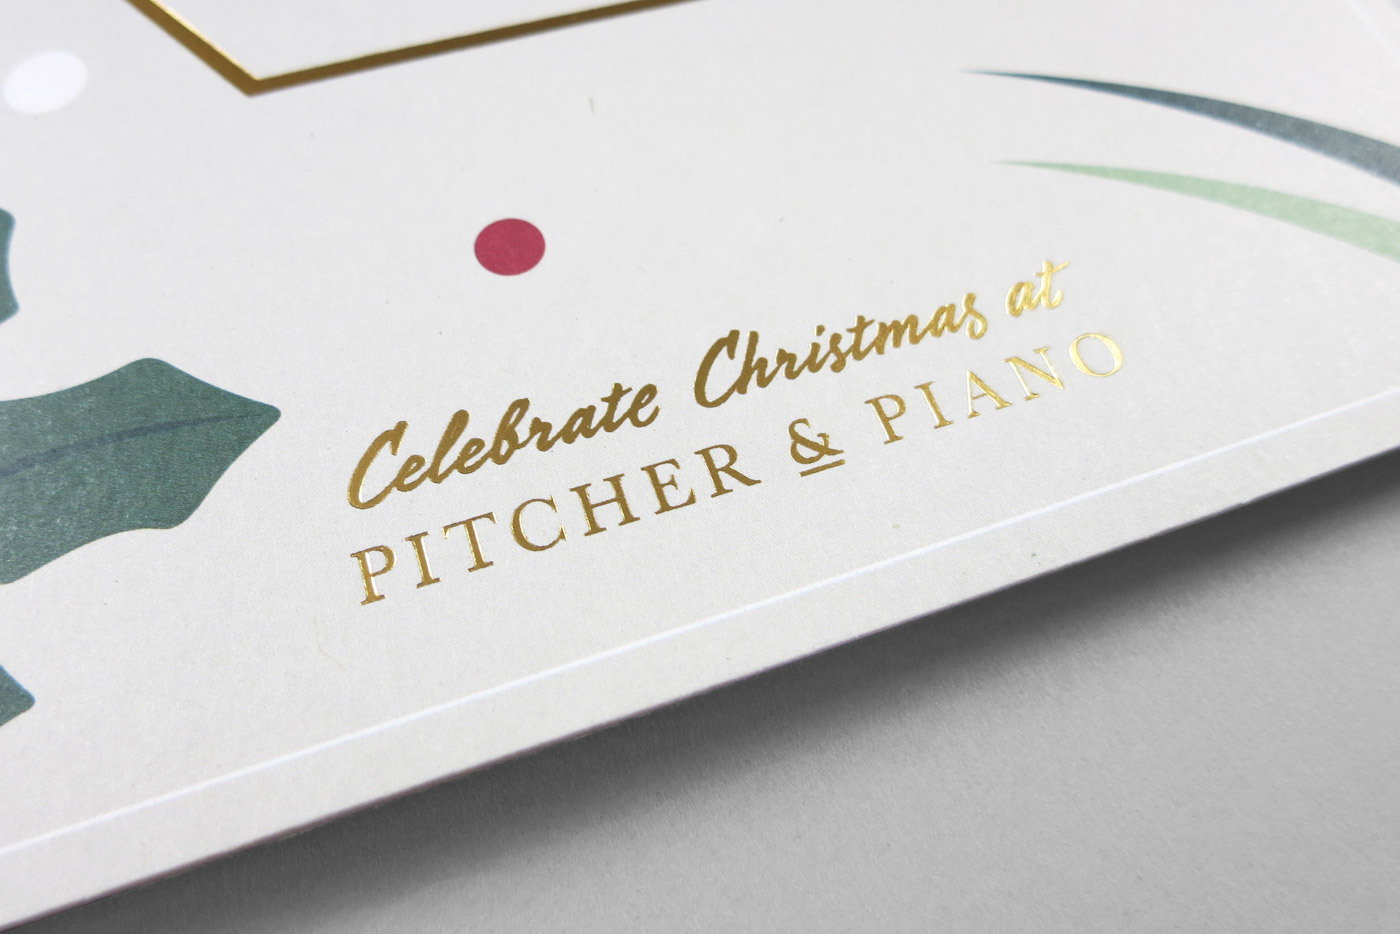 Pitcher Piano Logo Close Up